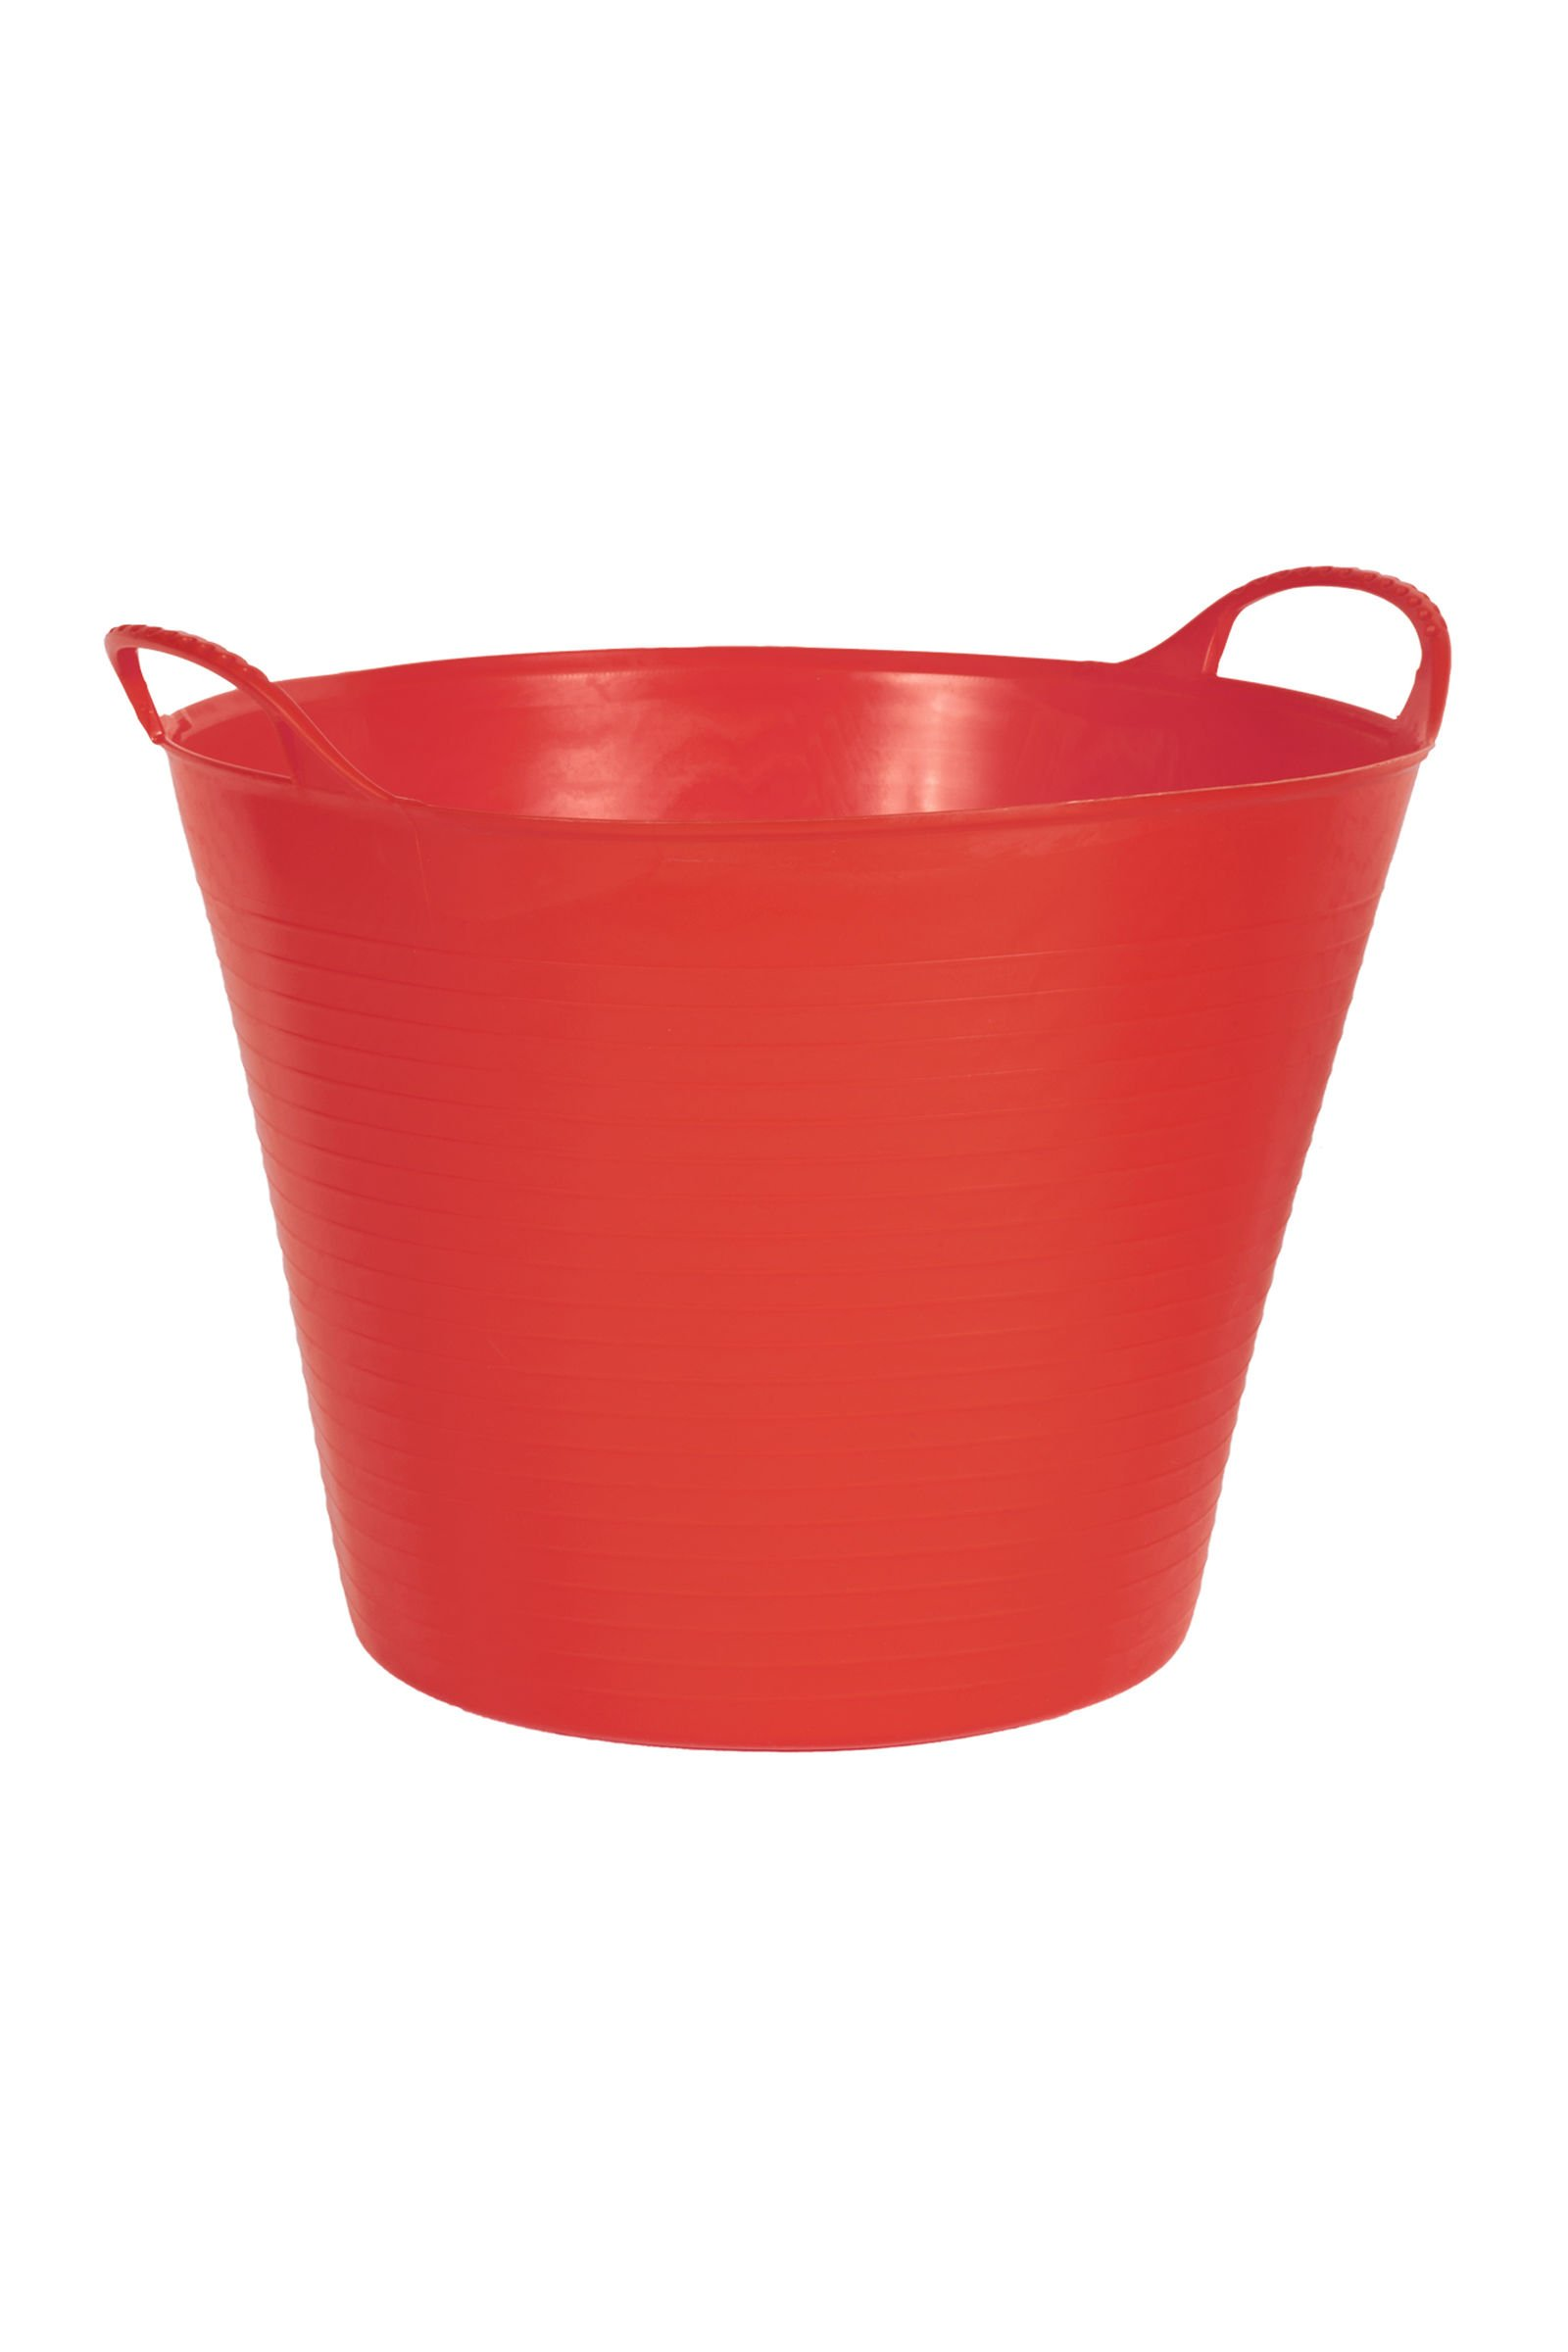 Colorful Tubtrug, 7 Gallon by Gardener's Supply Company